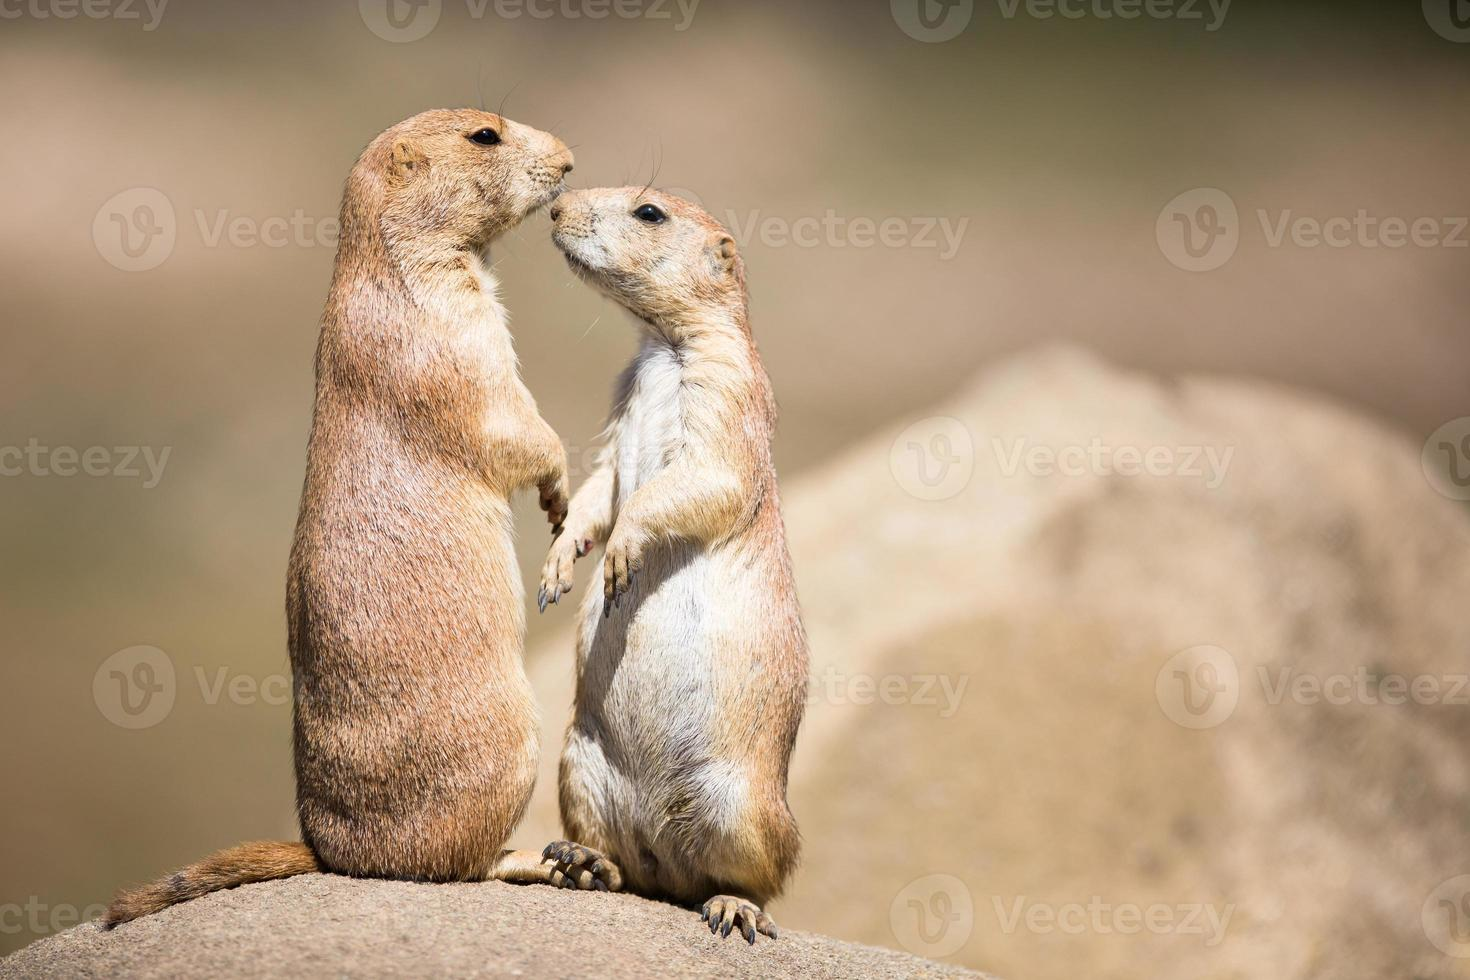 Two prairie dogs in close communication photo